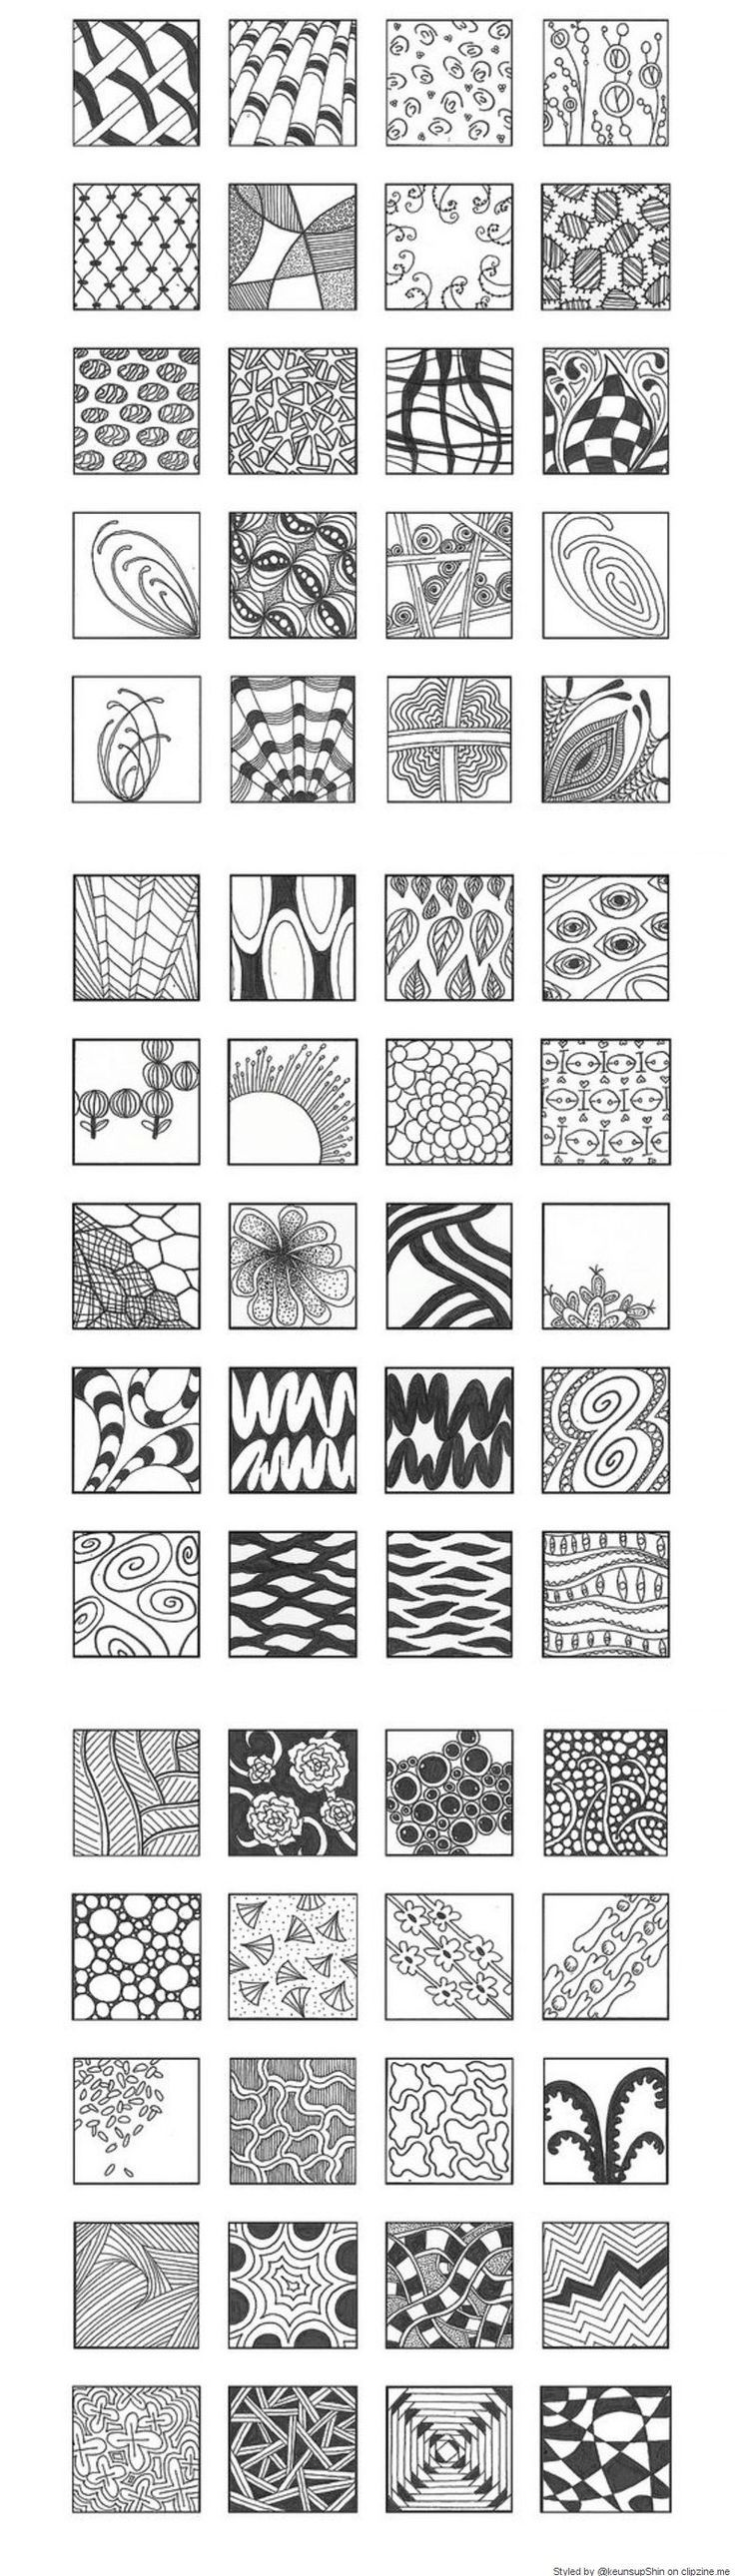 Zentangle Patterns - Possible Instructions: patterns on outside, moving in; different shapes floating in space, shape traveling across space; shape coming off of one edge (or 2), radial; grid; weave; shapes within grids, varying size/direction...